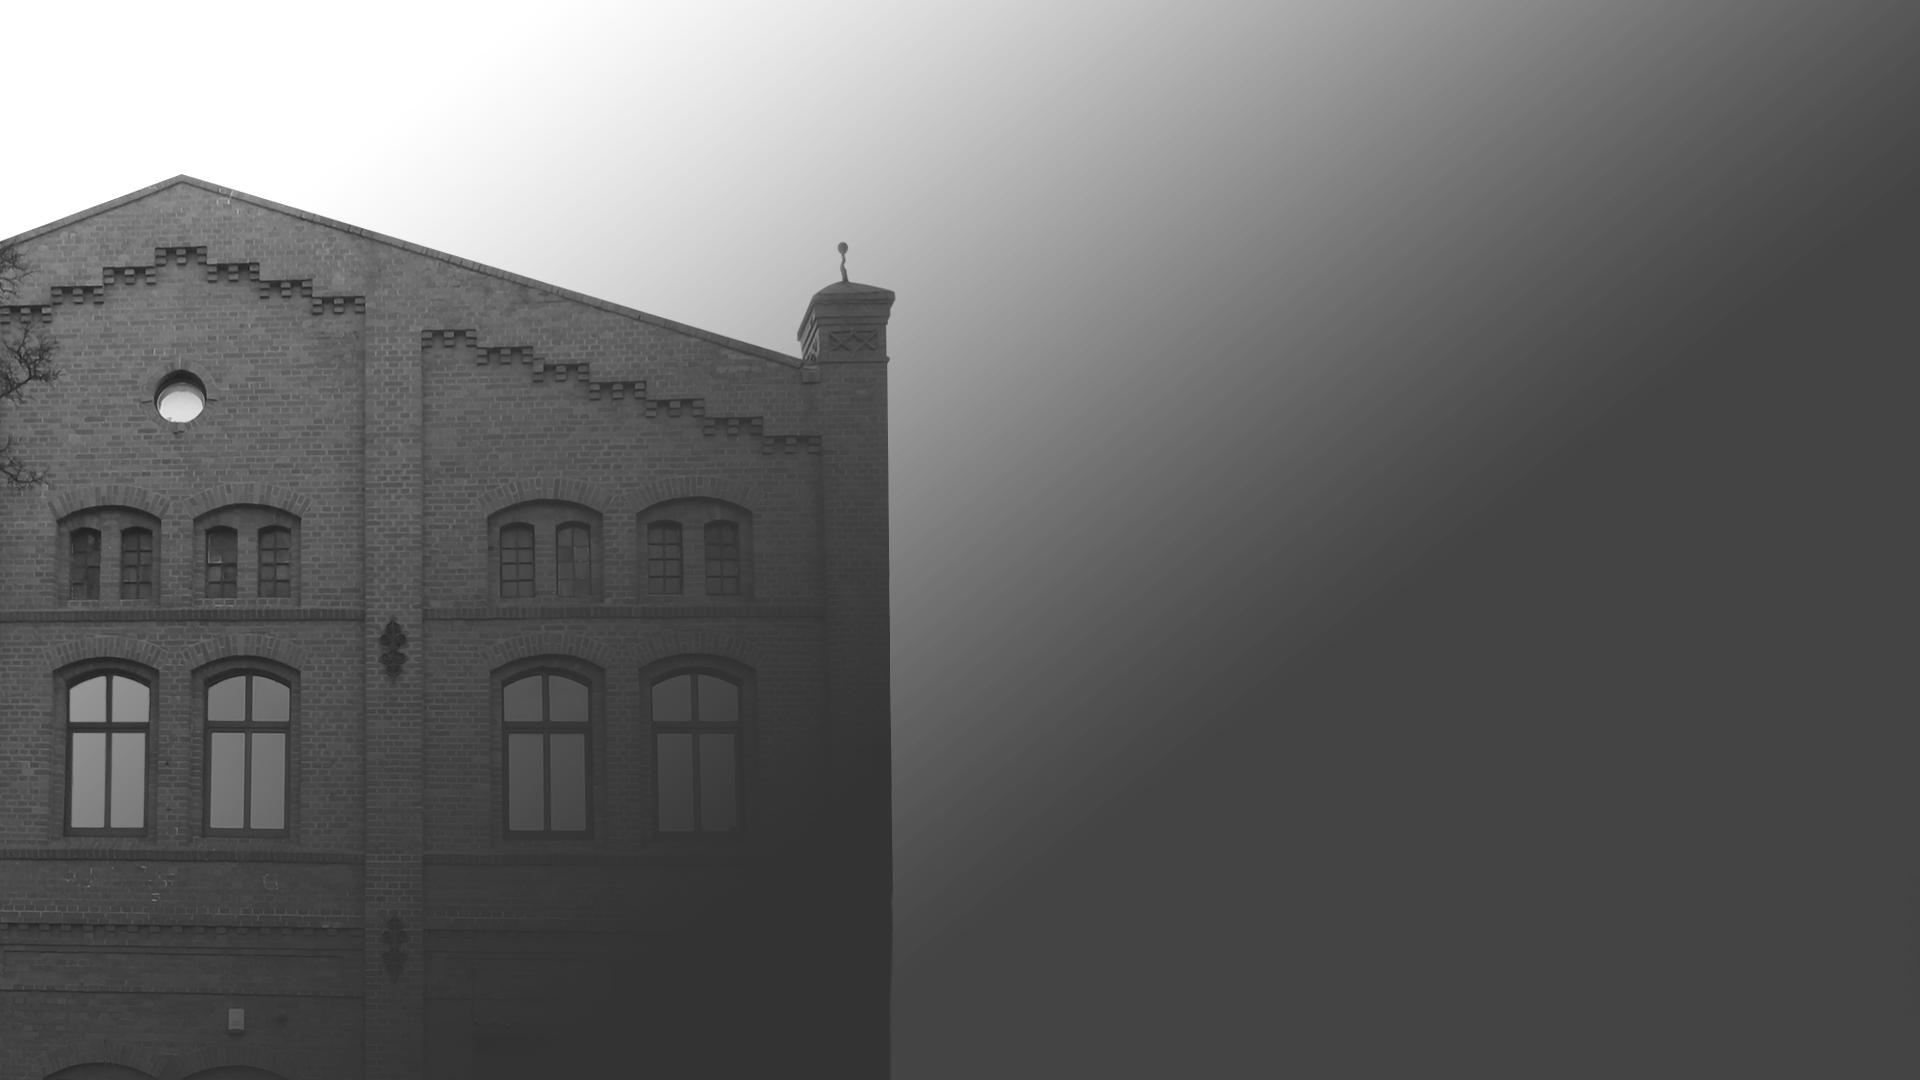 background image with building